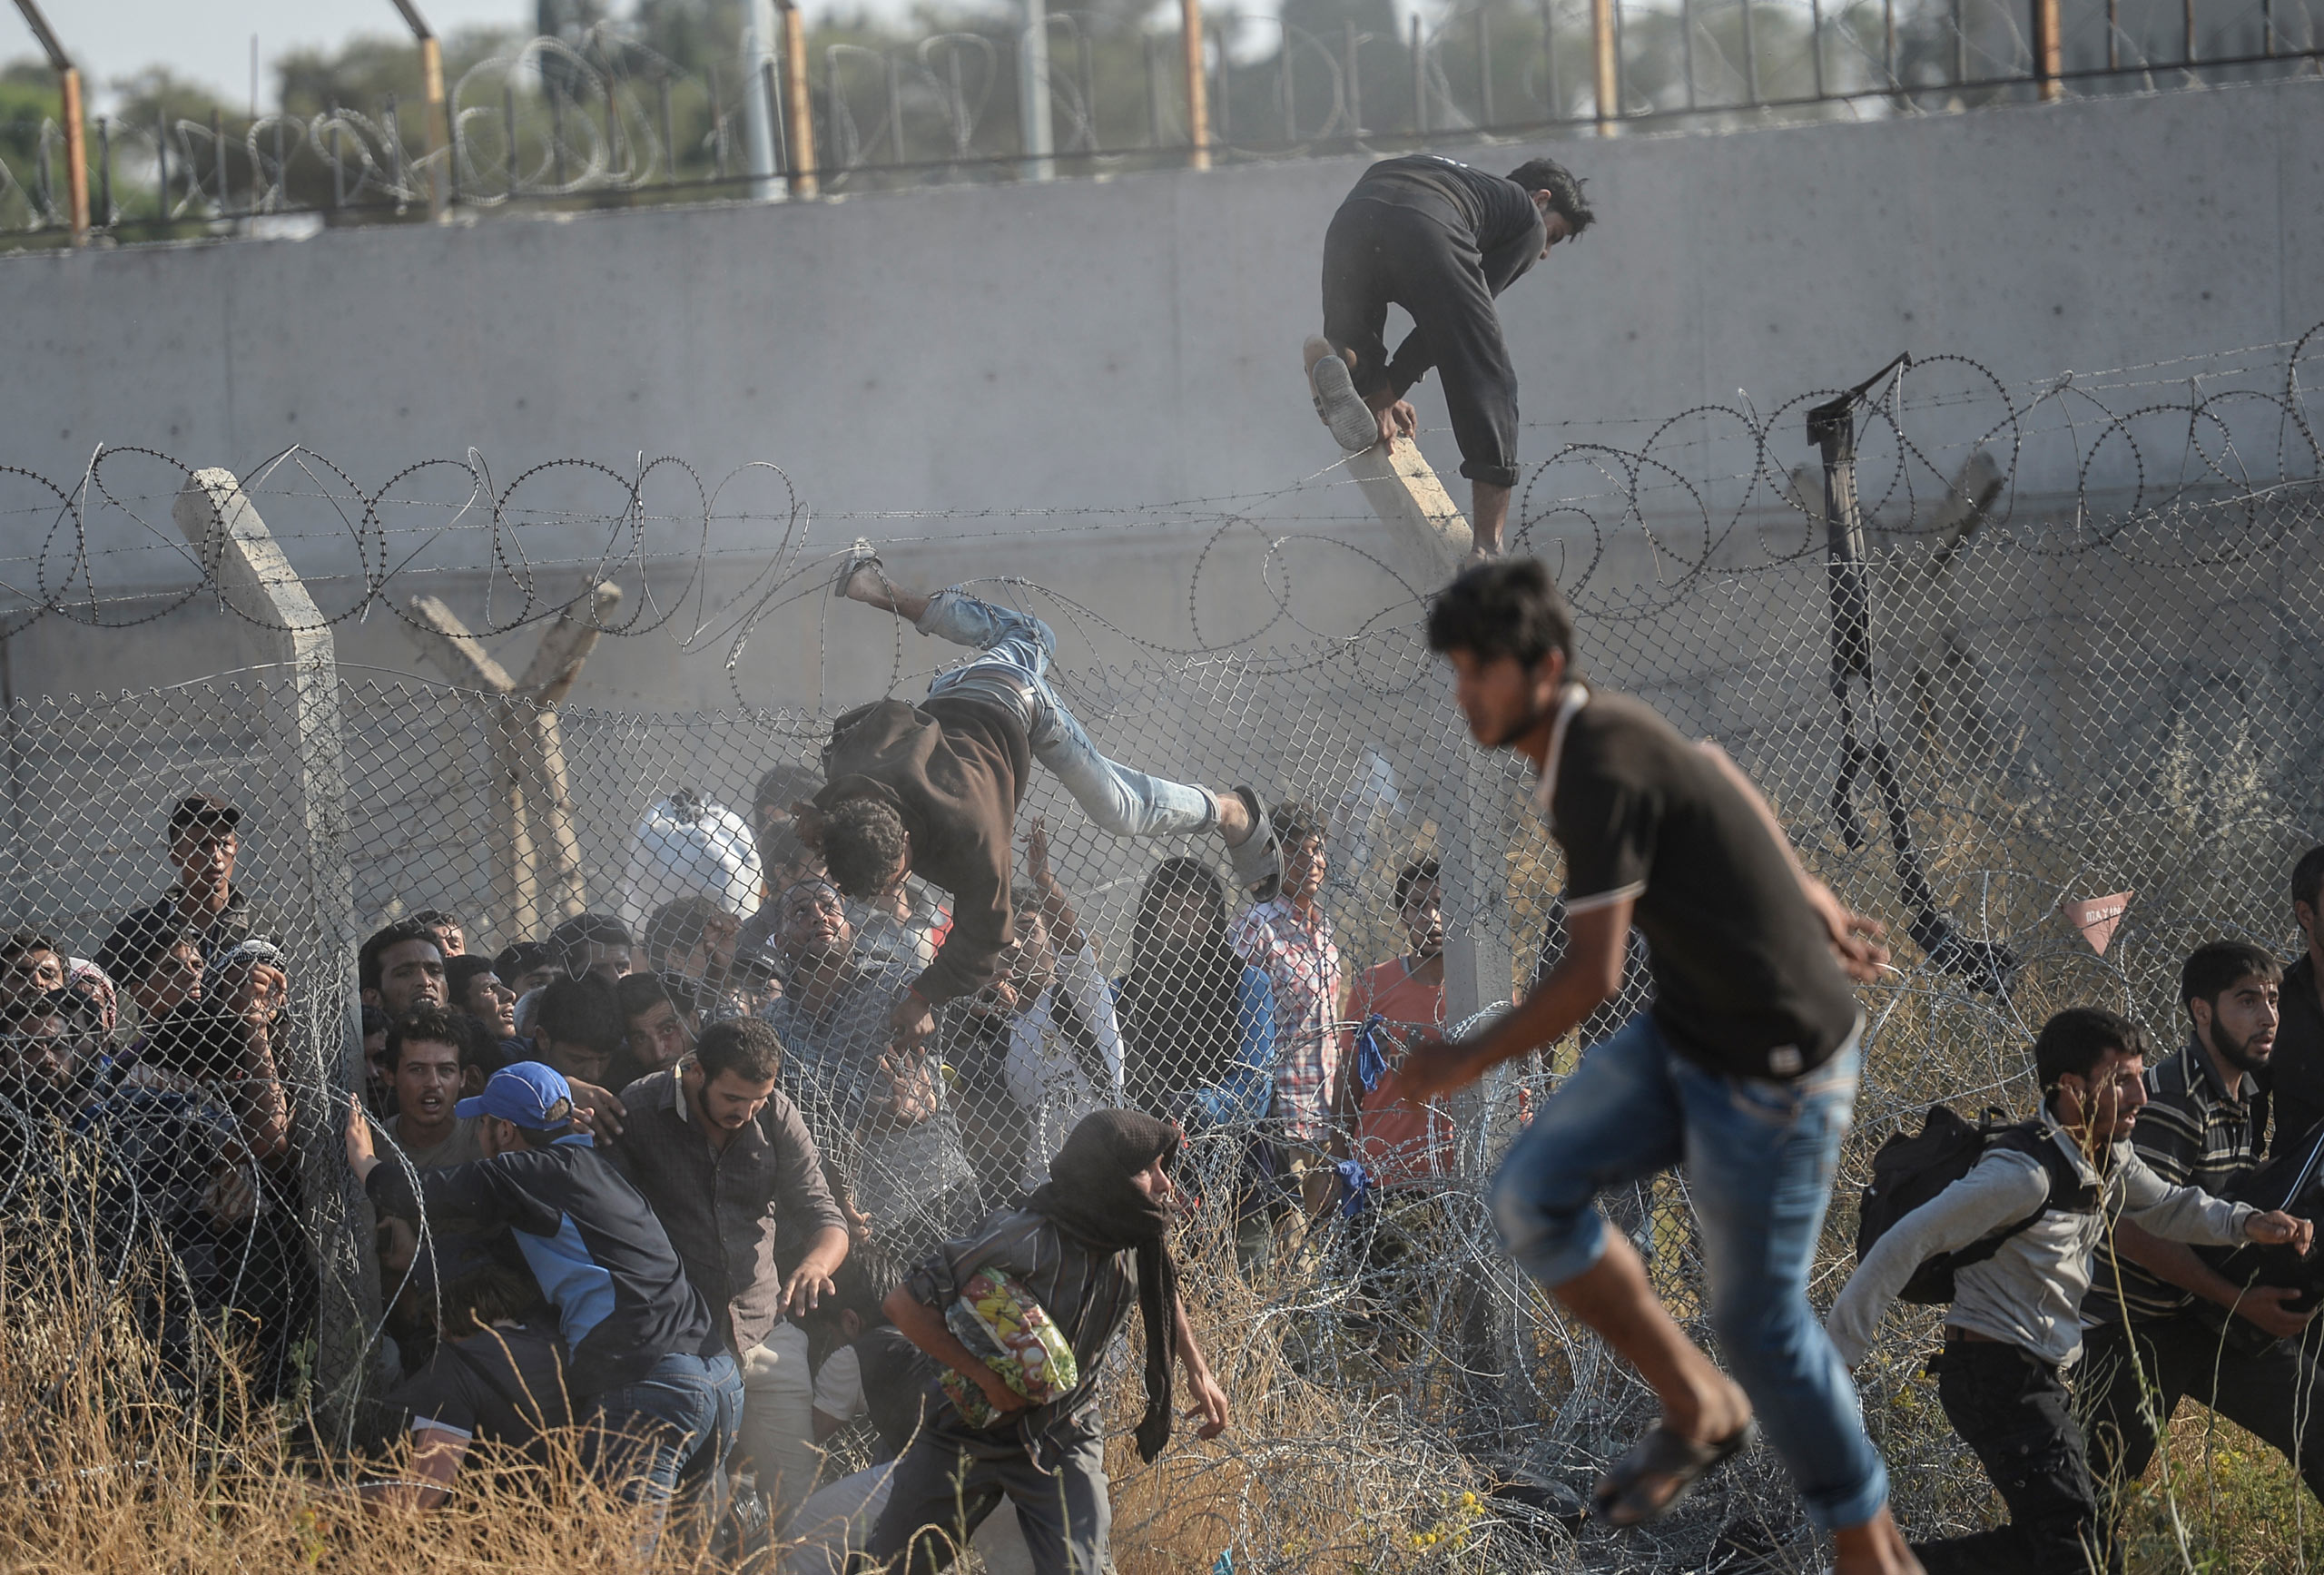 Thousands of Syrian refugees break down the wired fences, crossing illegally from the border city of Tell Abyad, as they heard that Kurdish fighters are approaching the Turkish crossing gate in Akçakale, in the Şanlıurfa province. June 14, 2015.